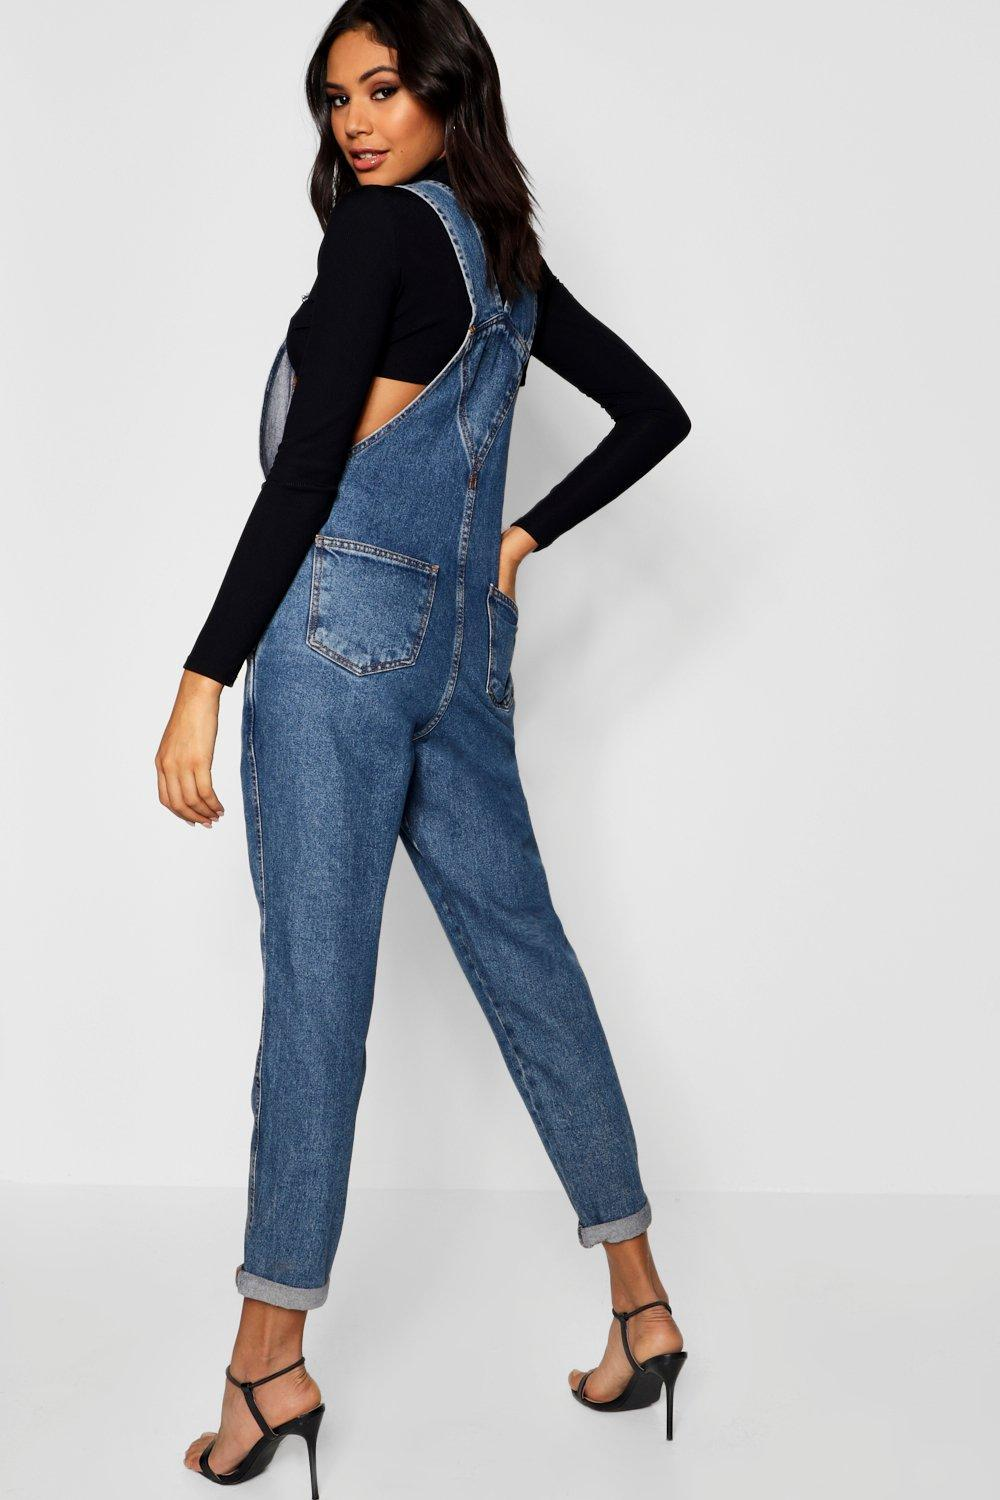 0612cb272030 Boohoo - Blue Denim Dungarees - Lyst. View fullscreen